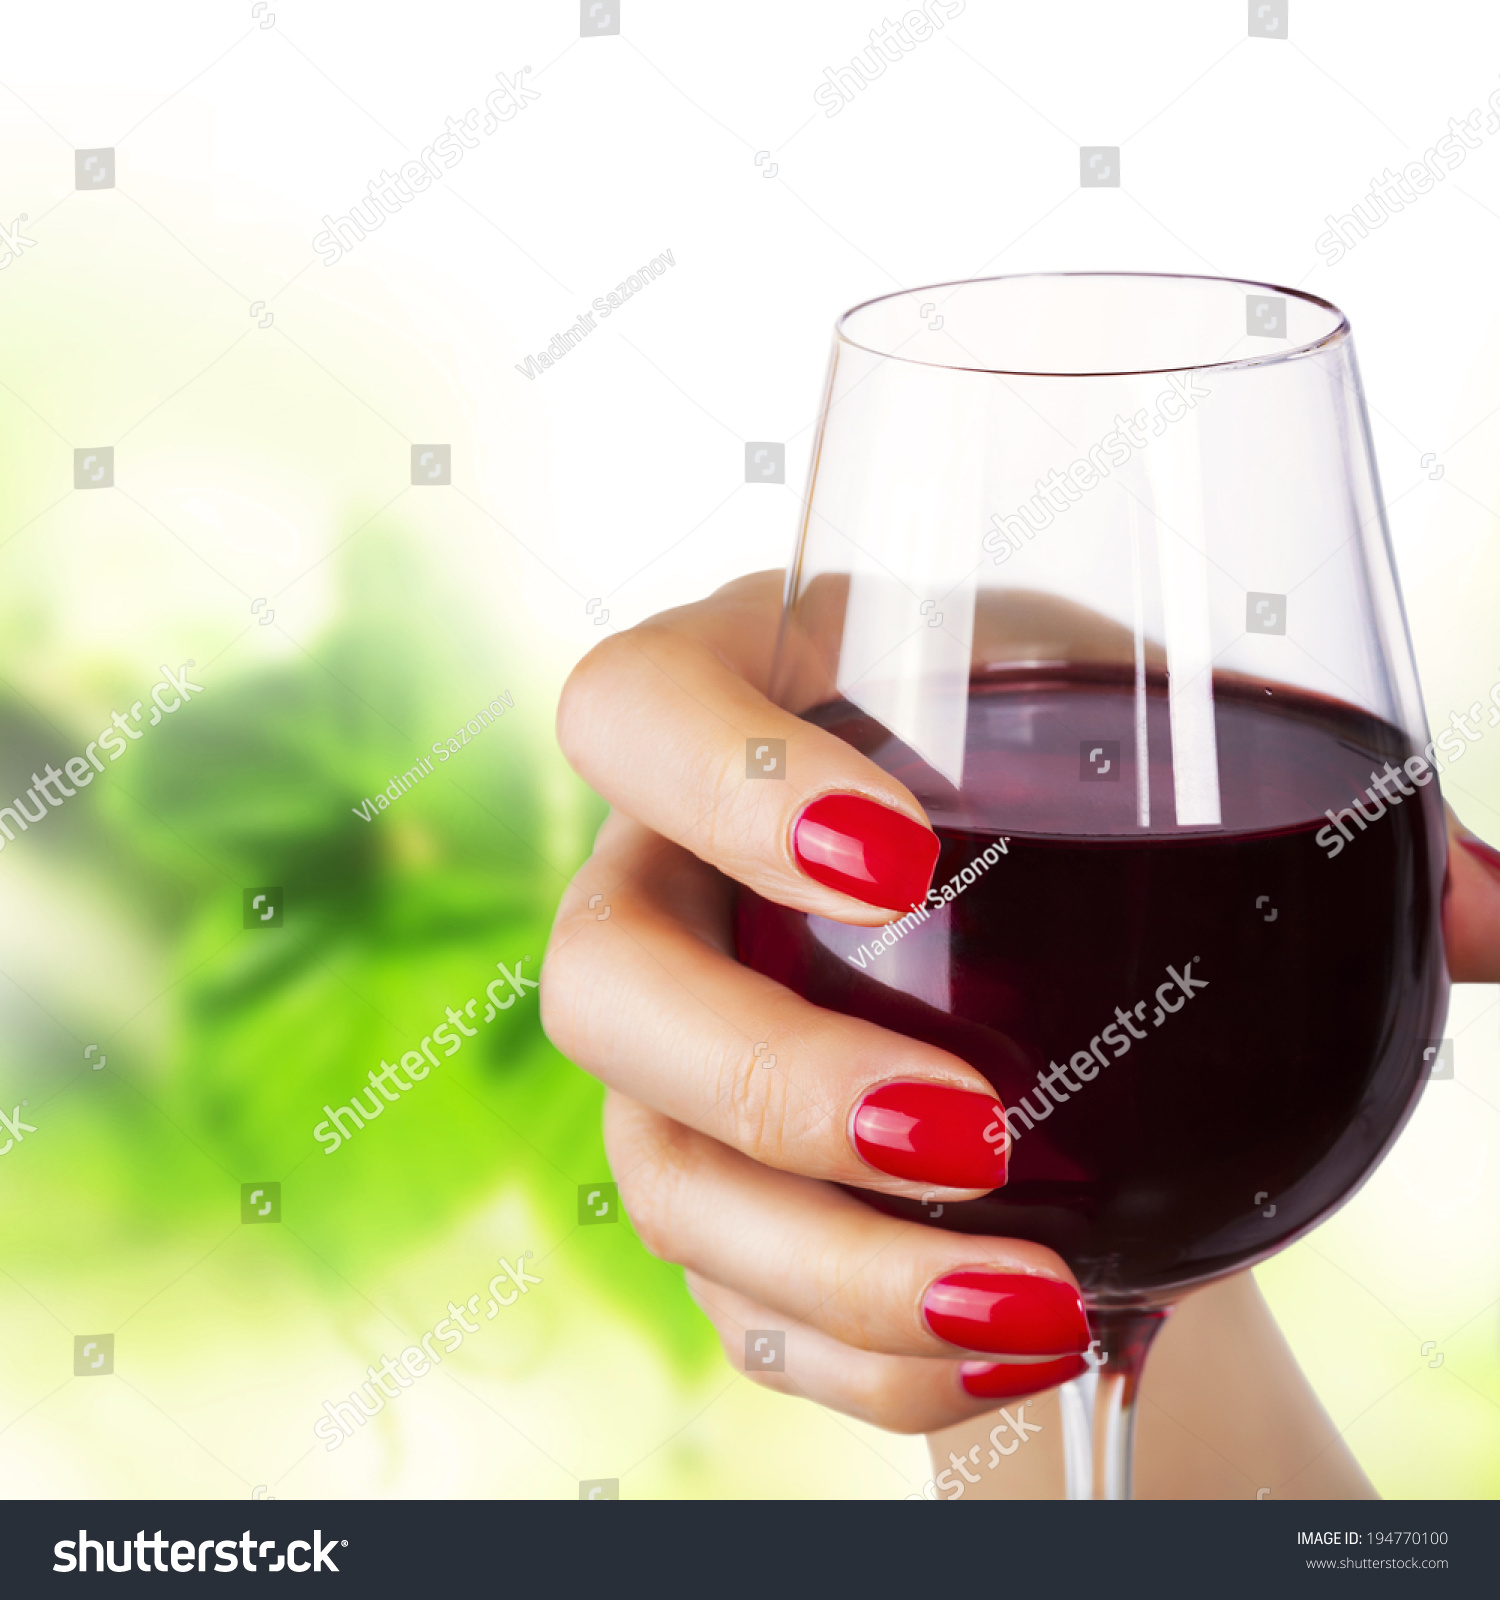 Woman Holding A Wine Glass. Stock Photo 194770100 ...